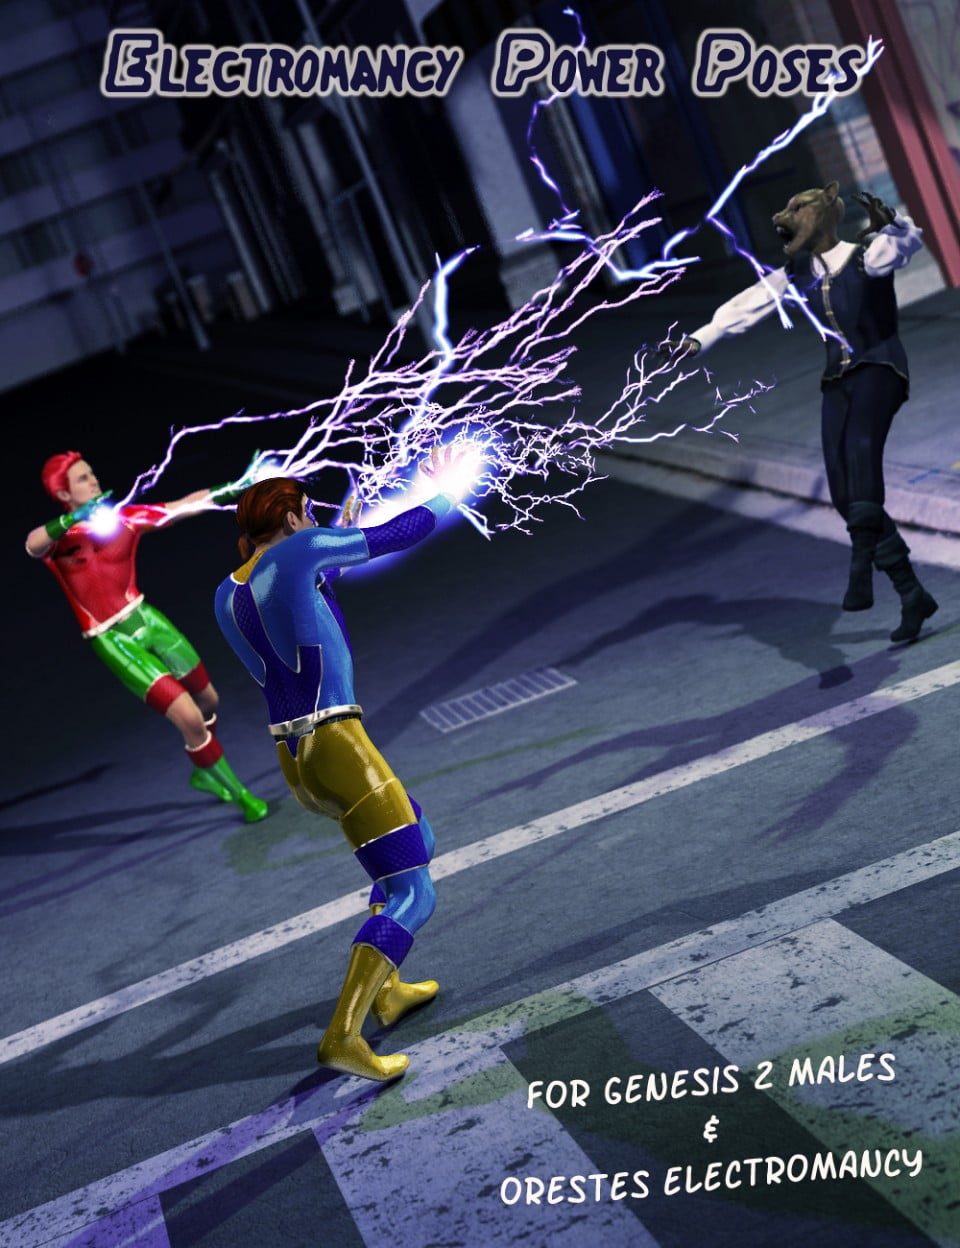 Electromancy Power Poses for Genesis 2 Male(s)